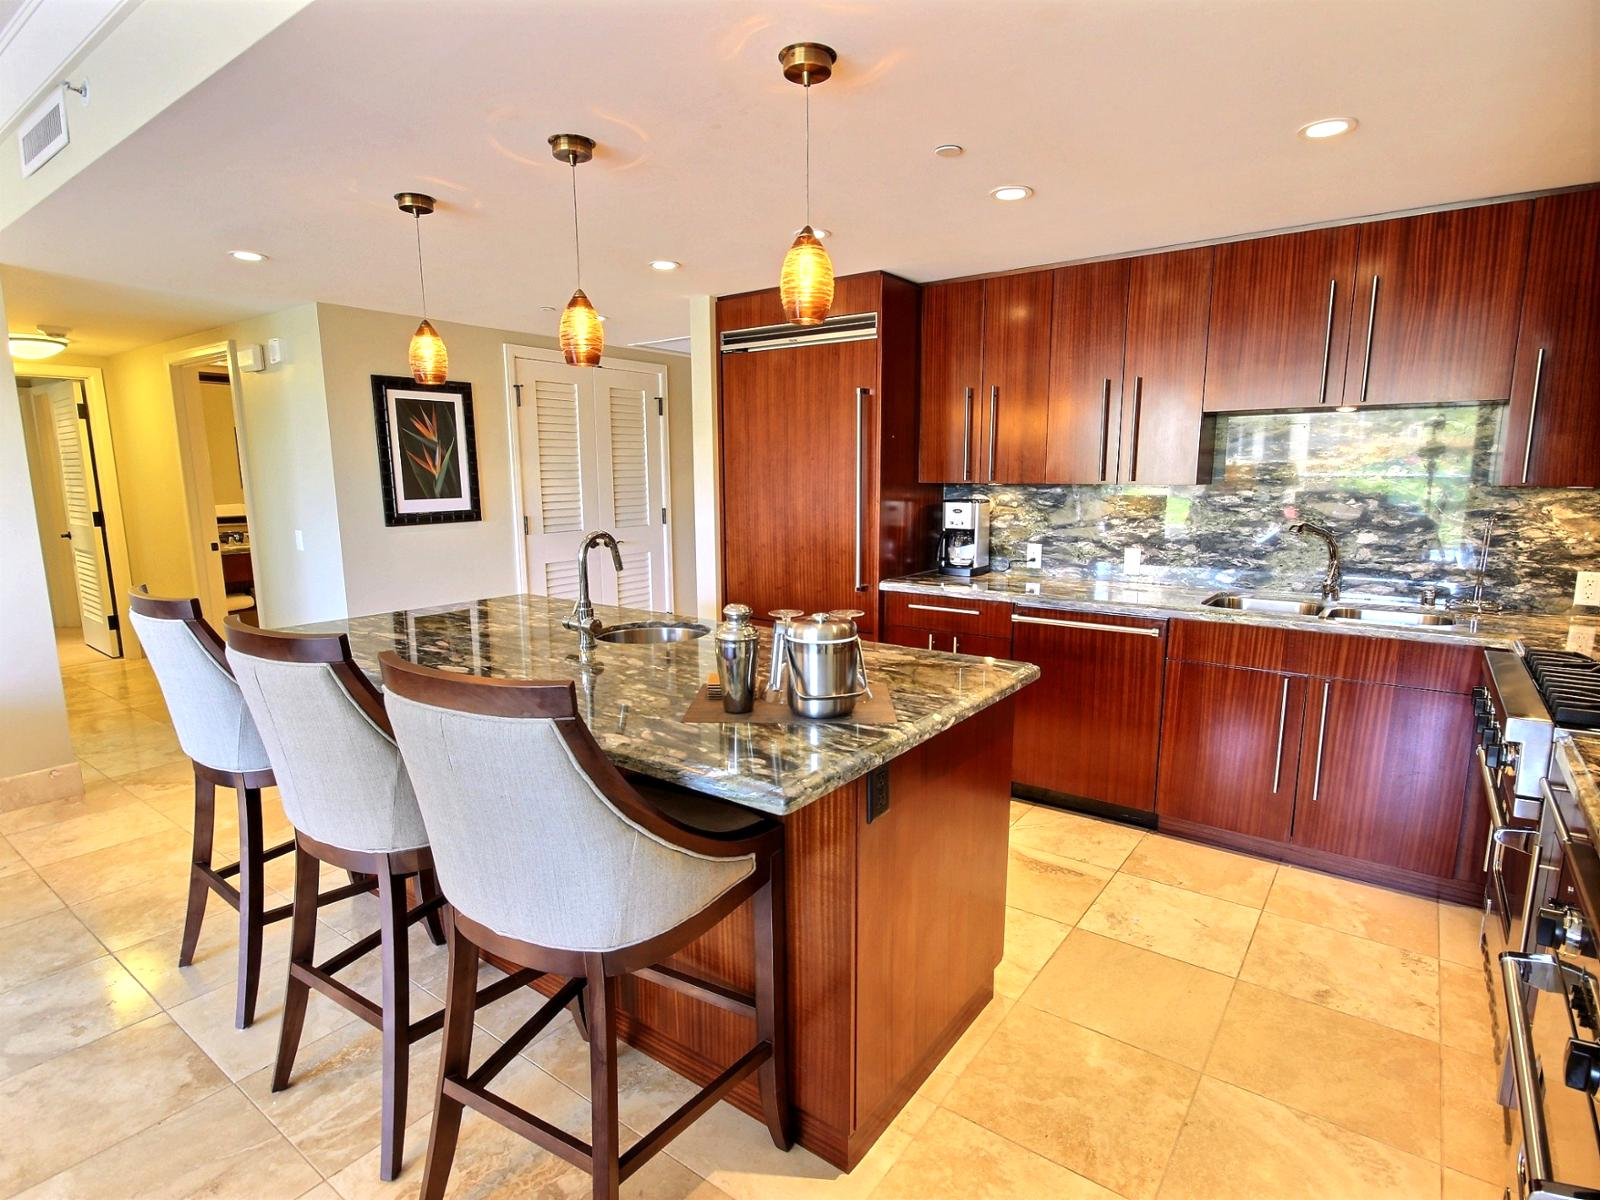 Cherrywood cabinets and granite kitchen counters